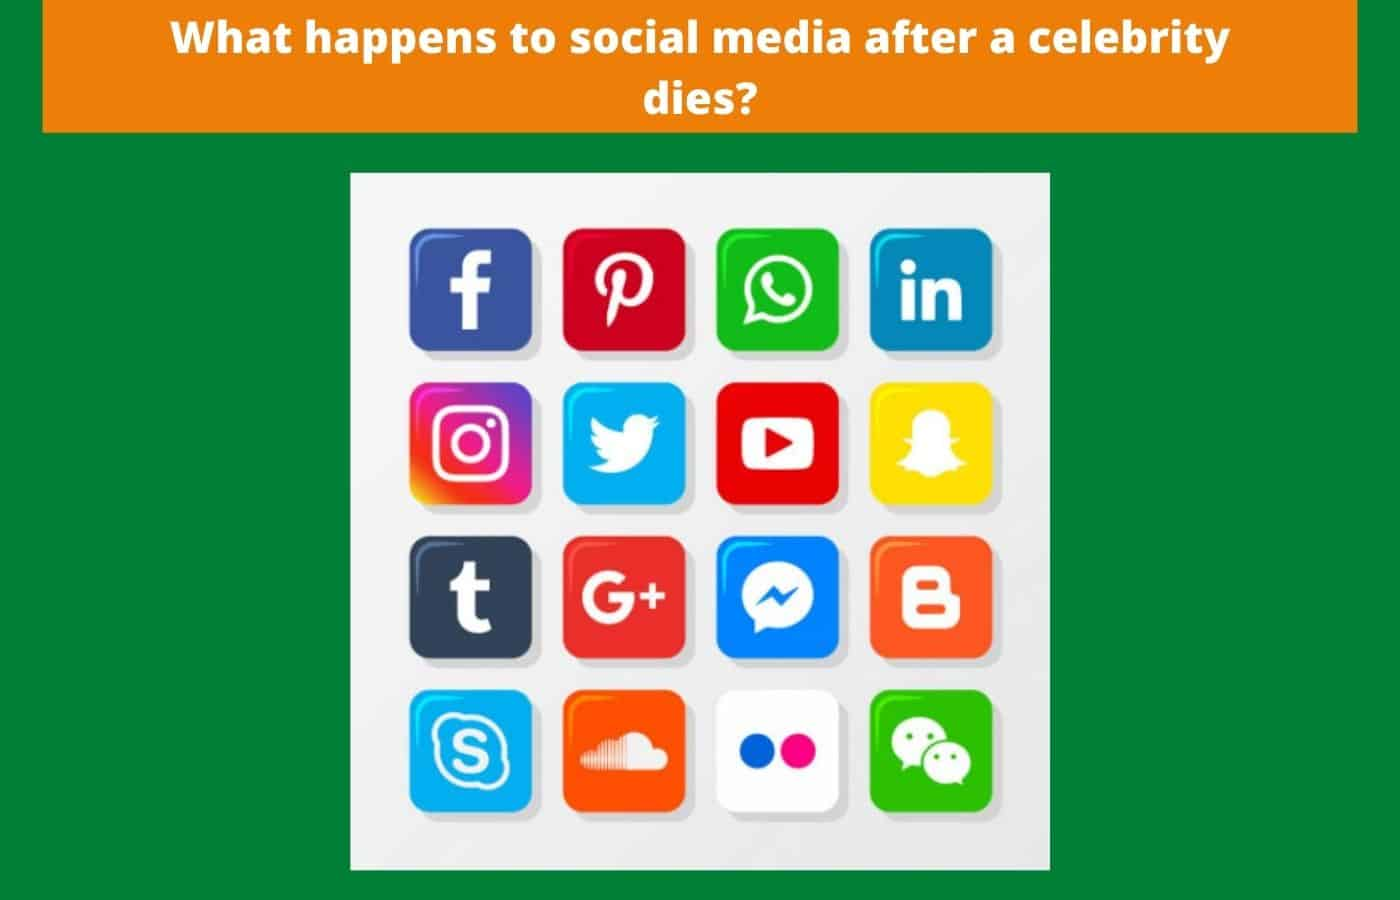 What happens to social media after a celebrity dies